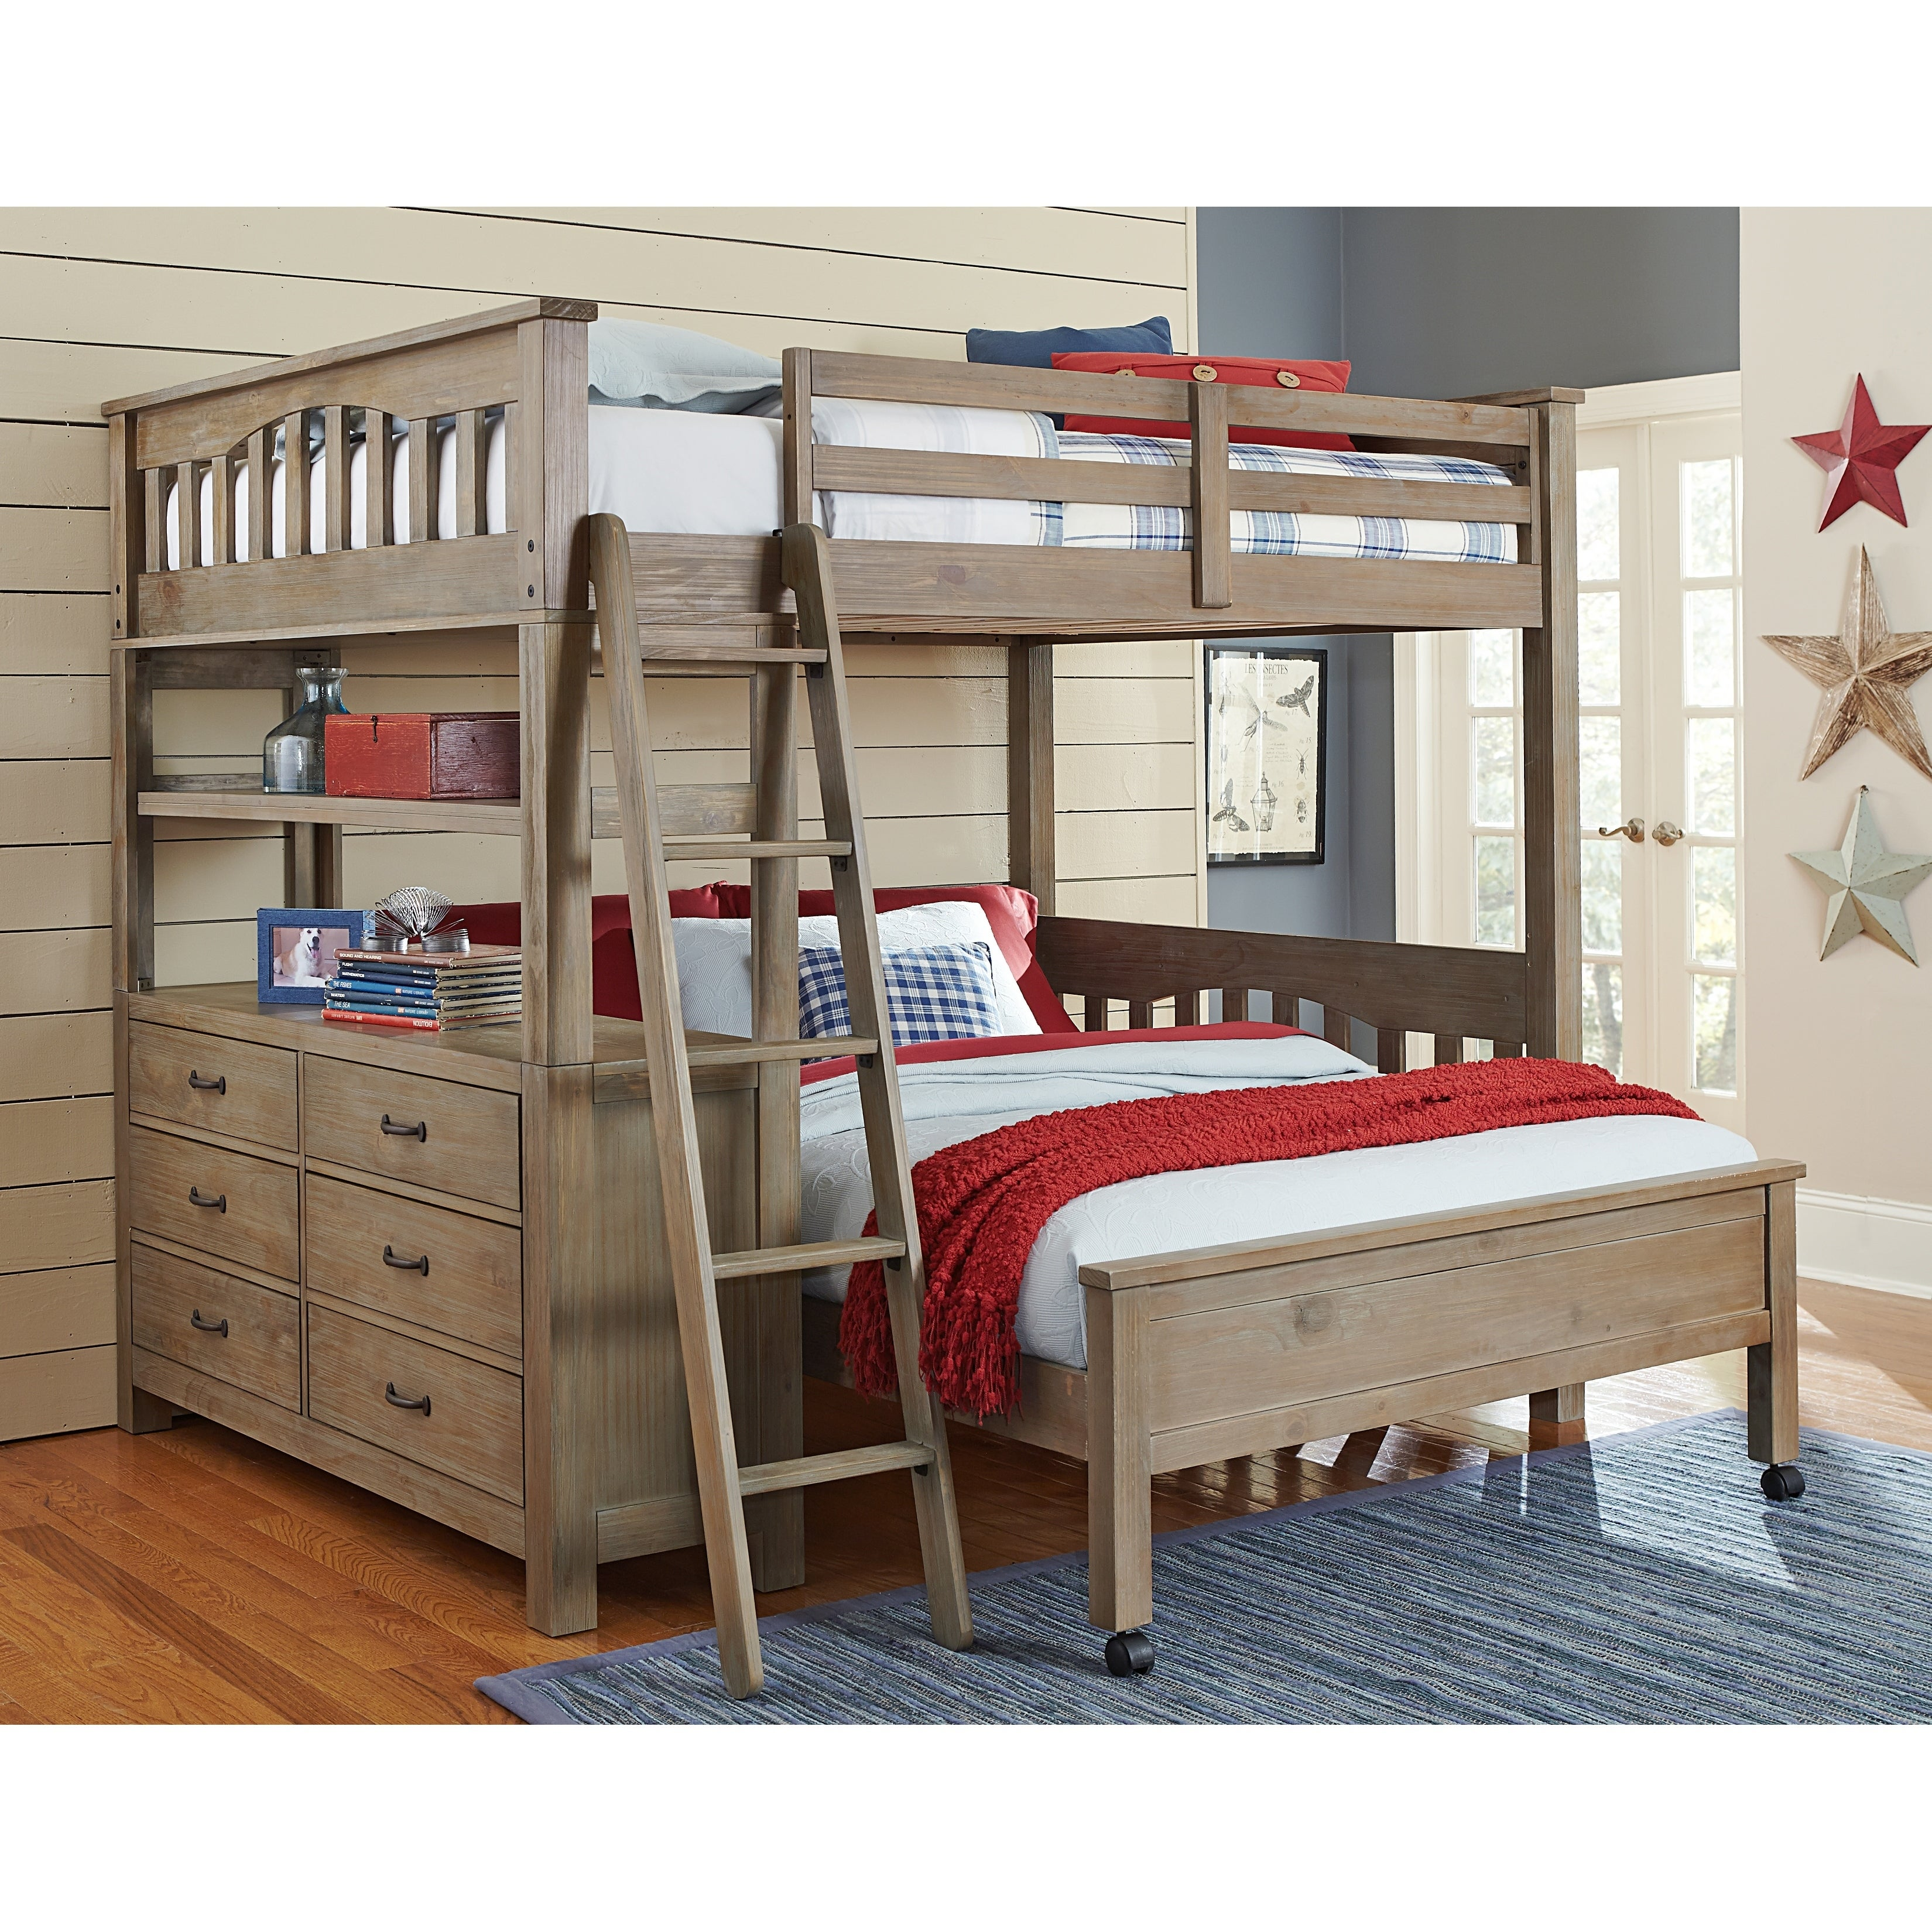 Loft Bed Nightstand Another Home Image Ideas